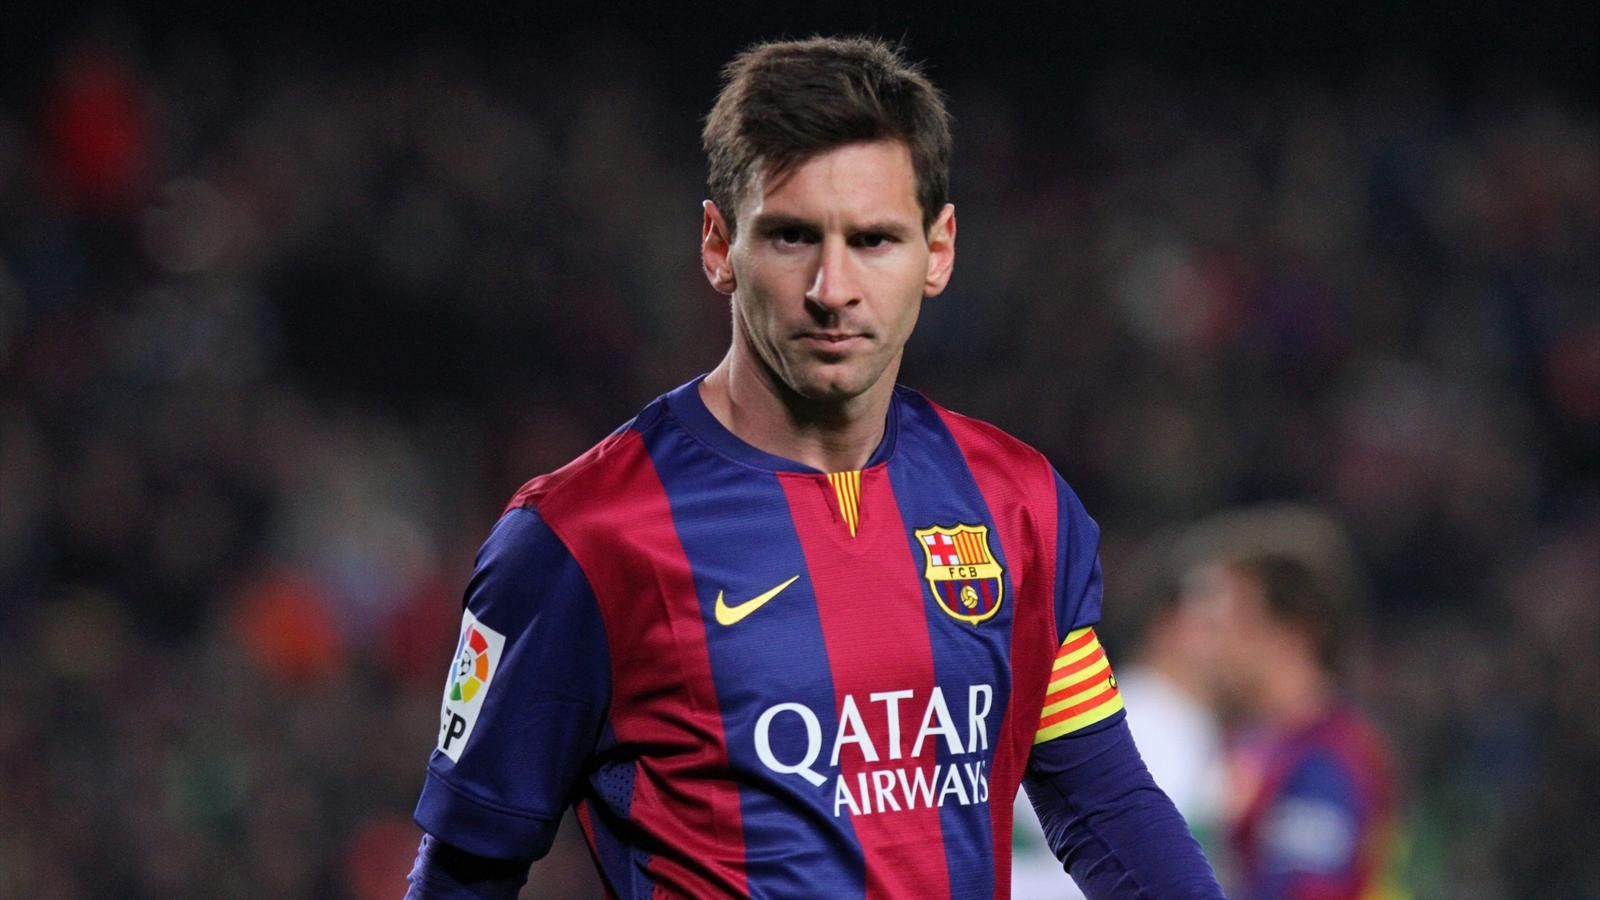 Lionel Messi Blocks Miss BumBum On Instagram For These Photos messi1